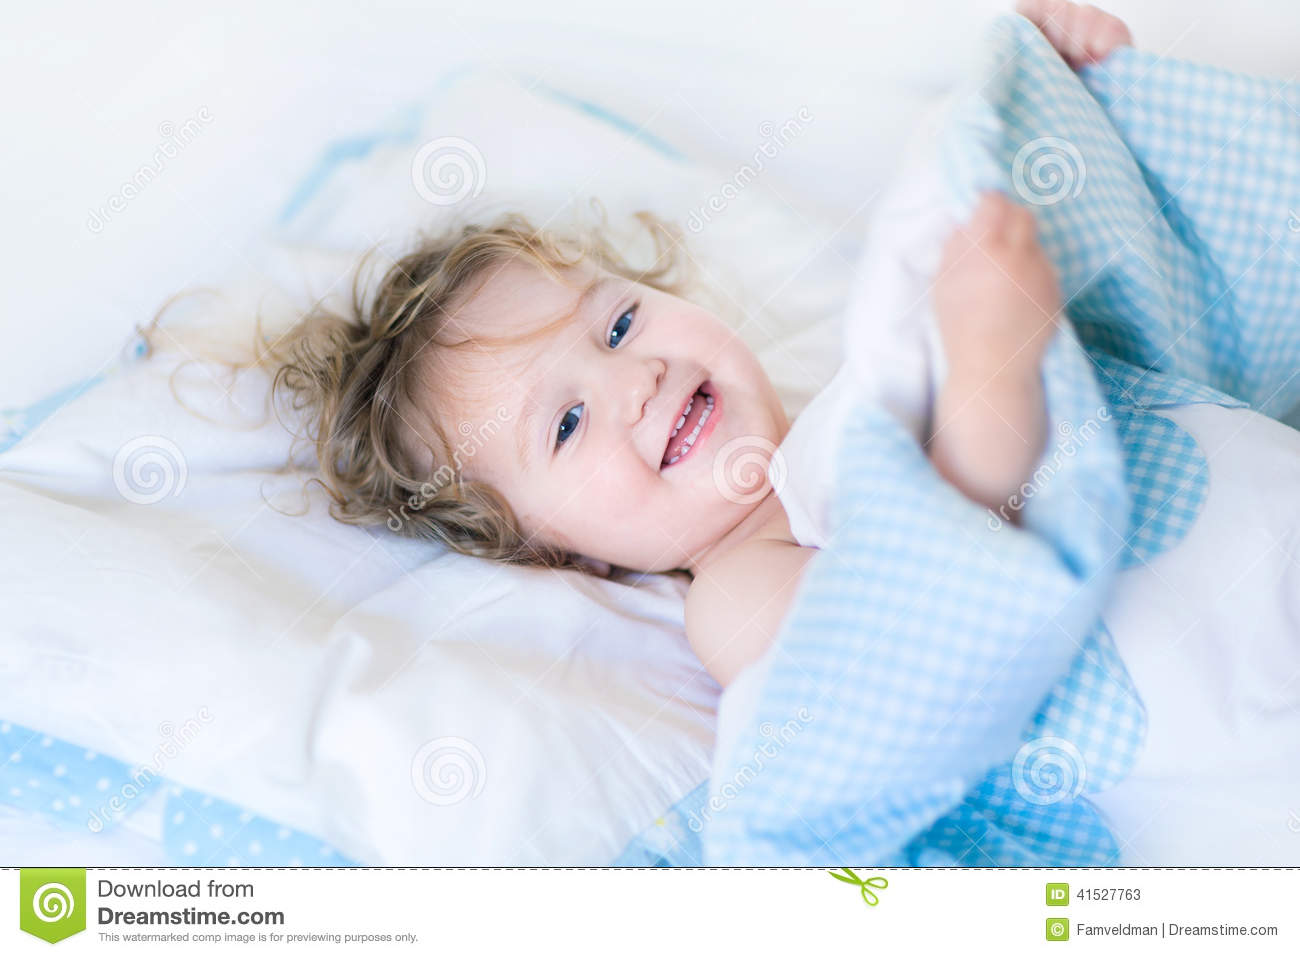 child waking up - photo #36